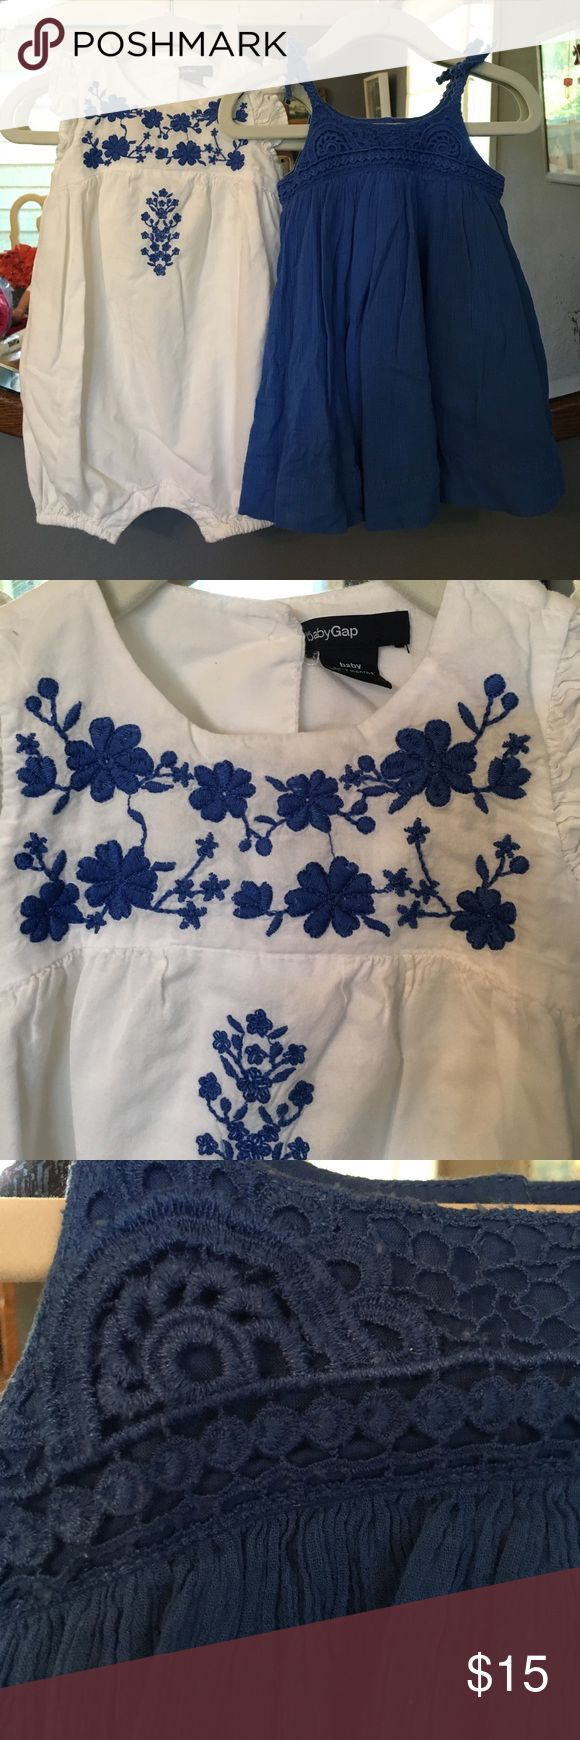 Pair of Baby Gap Cobalt Blue outfits EUC adorable white jumper with cobalt blue embroidery and a blue muslin brocade dresser with bloomers. Both are size 6-12 mos. too cute! GAP Dresses Casual